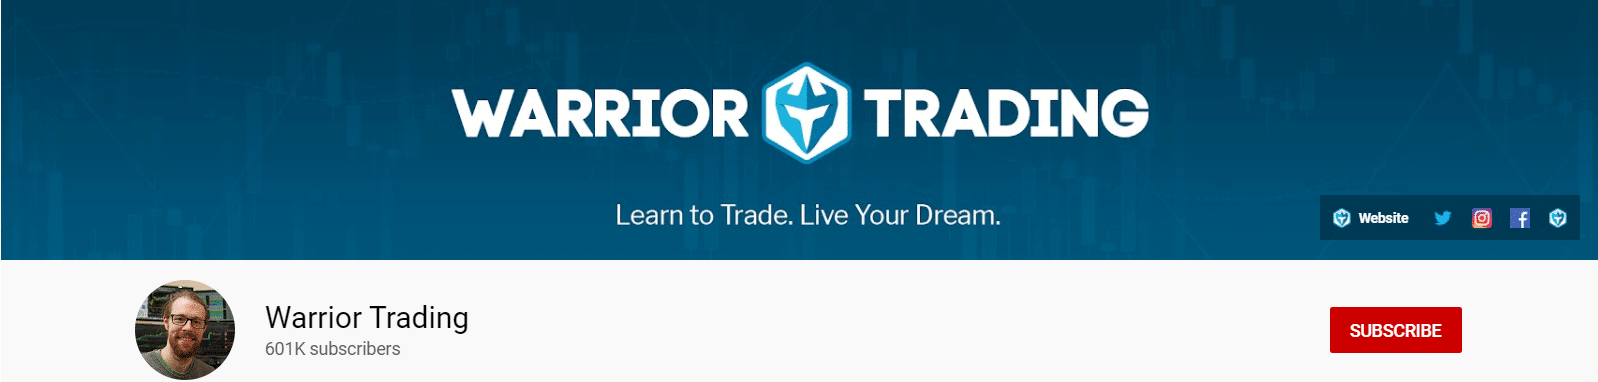 top 10 forex youtube channels - Warrior Trading